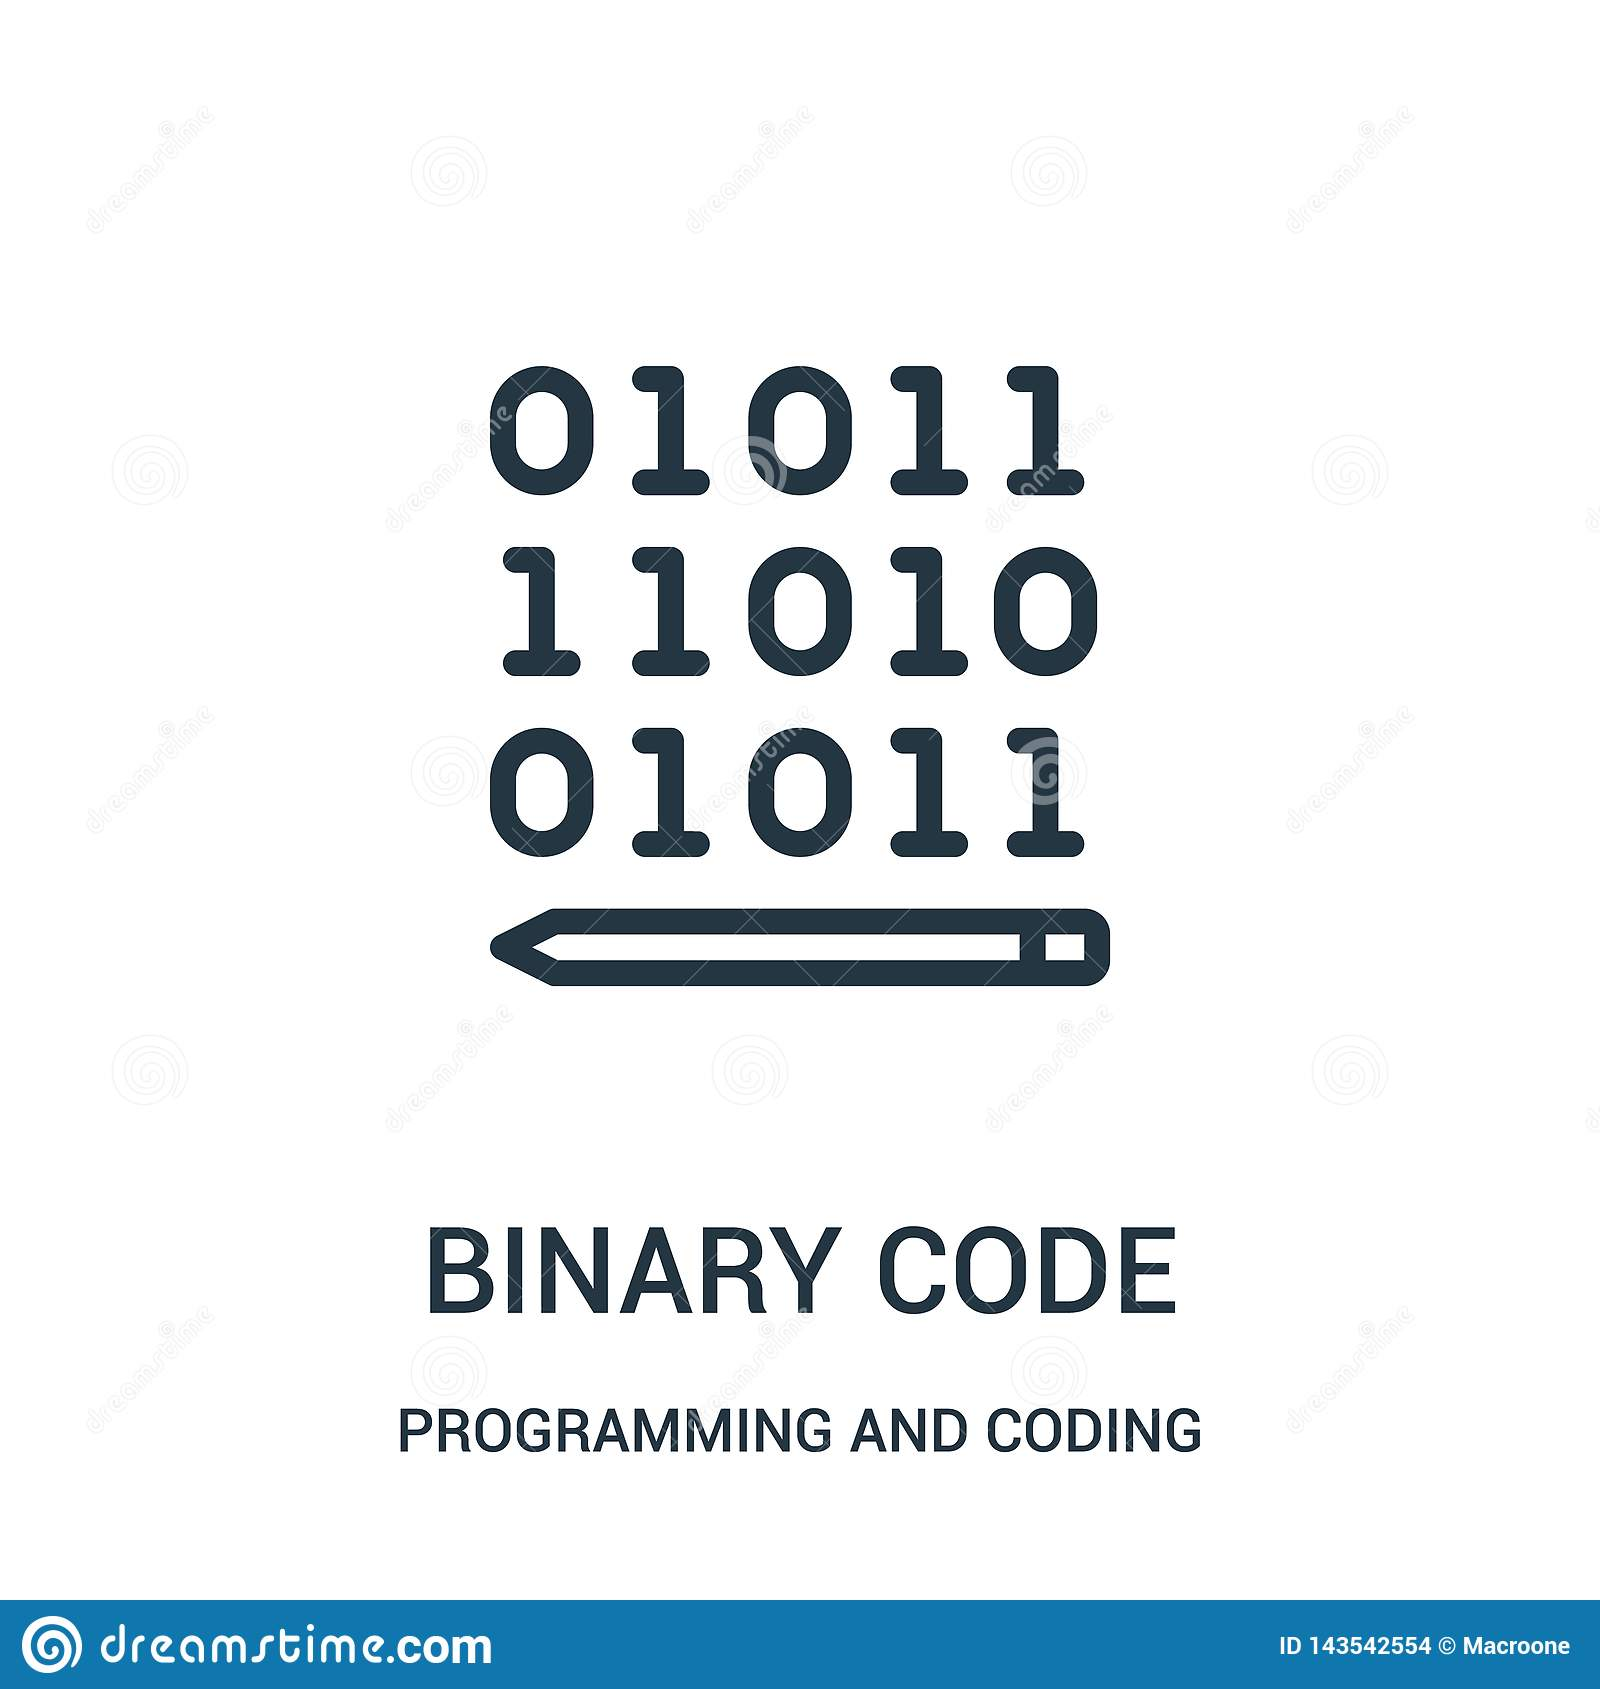 binary code icon vector from programming and coding collection. Thin line binary code outline icon vector illustration